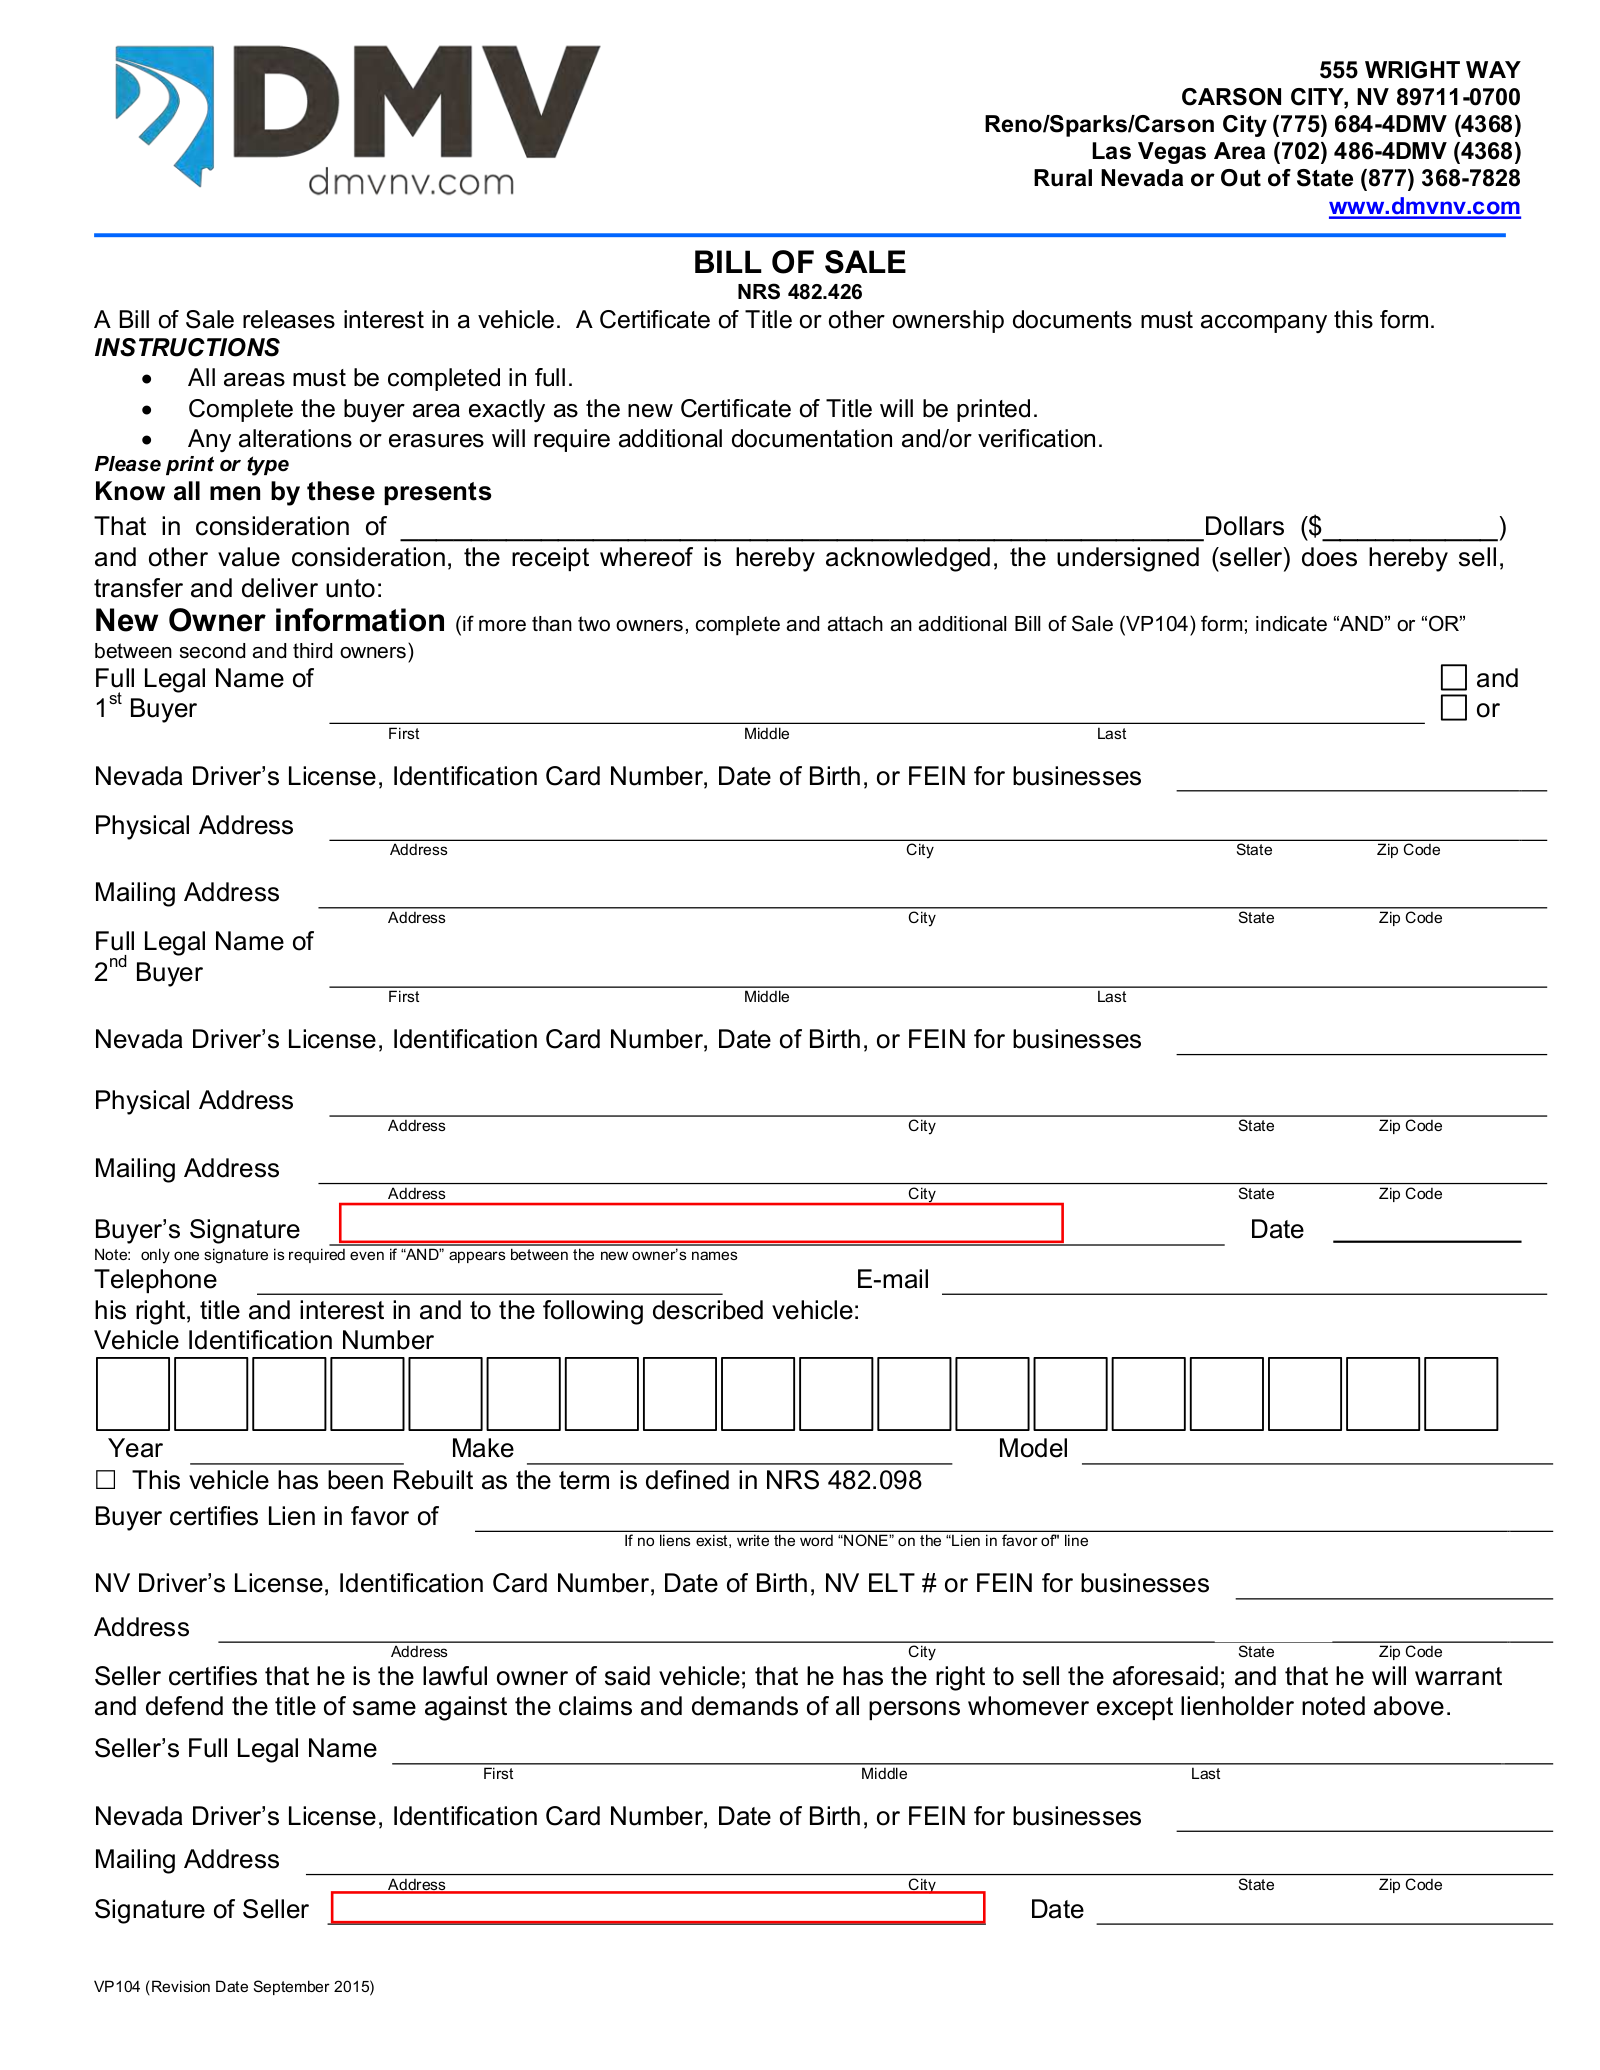 Bill Of Sale Nevada >> Nevada Vehicle Bill Of Sale Form Vp 104 Eforms Free